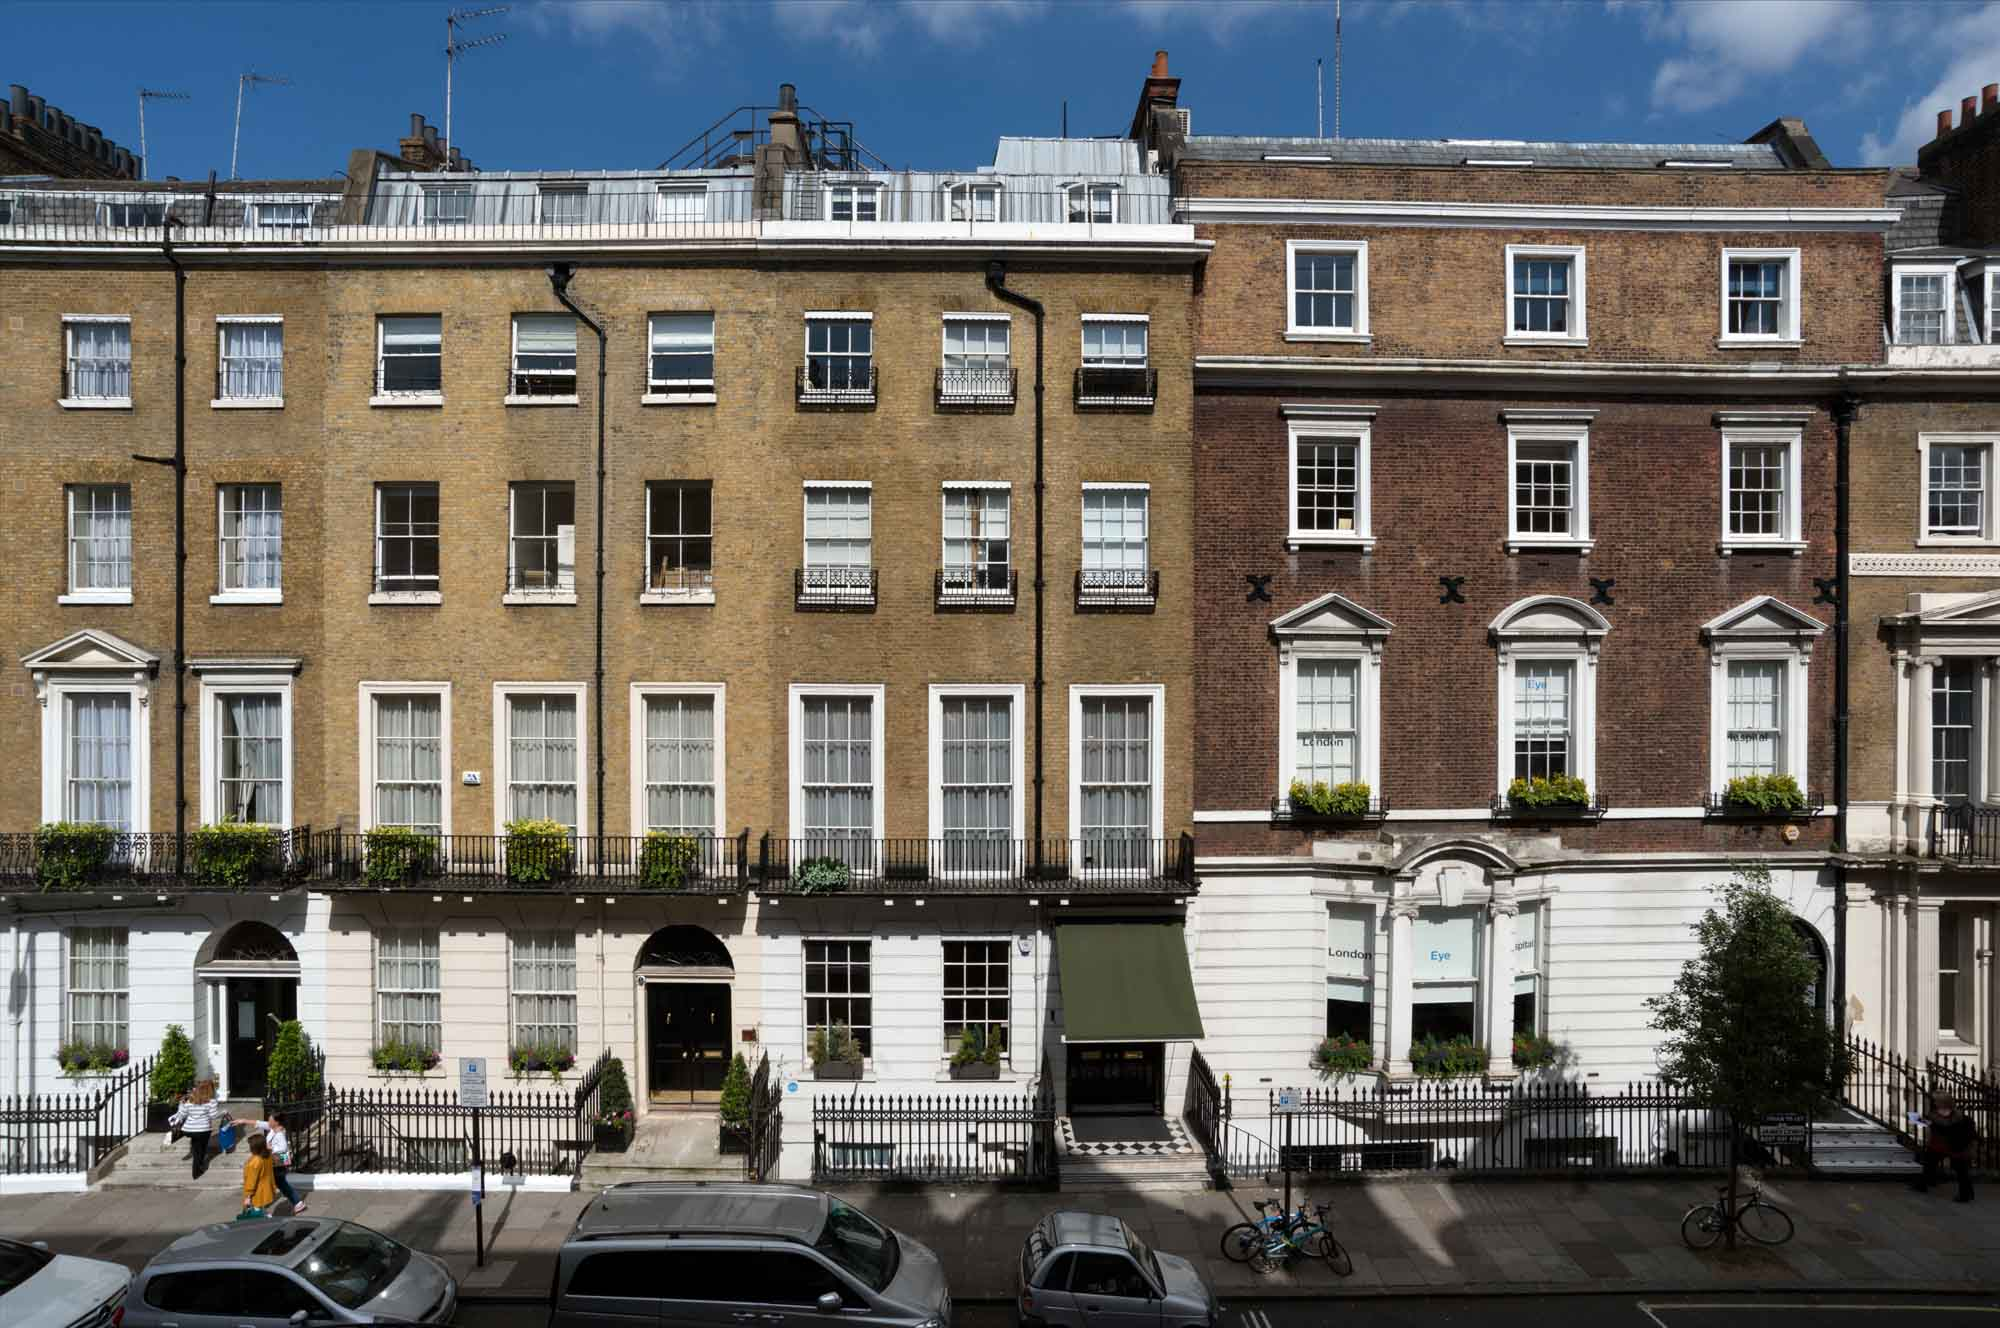 For most of its history, the southern end of Harley Street was the more fashionable address. Nos 6 and 8 to the left were built in 1825-7, probably by the architect Thomas Hardwick.